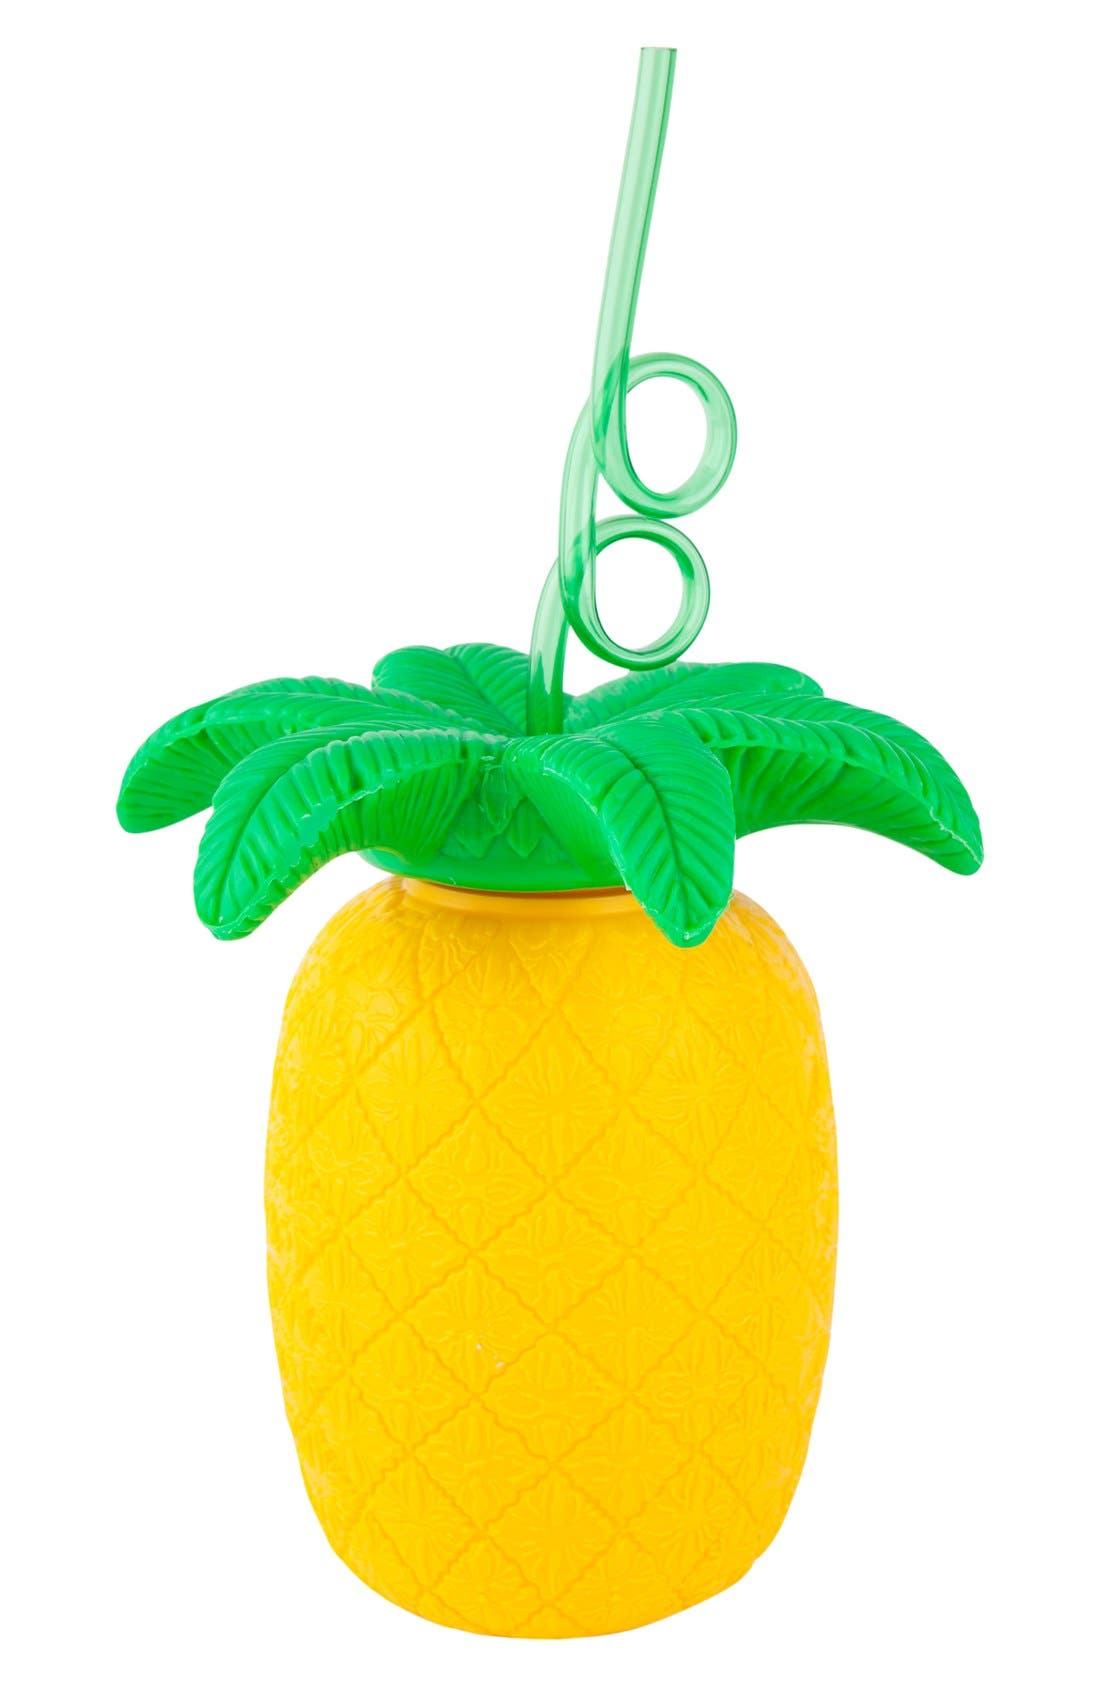 Alternate Image 1 Selected - Sunnylife Pineapple Cup & Straw